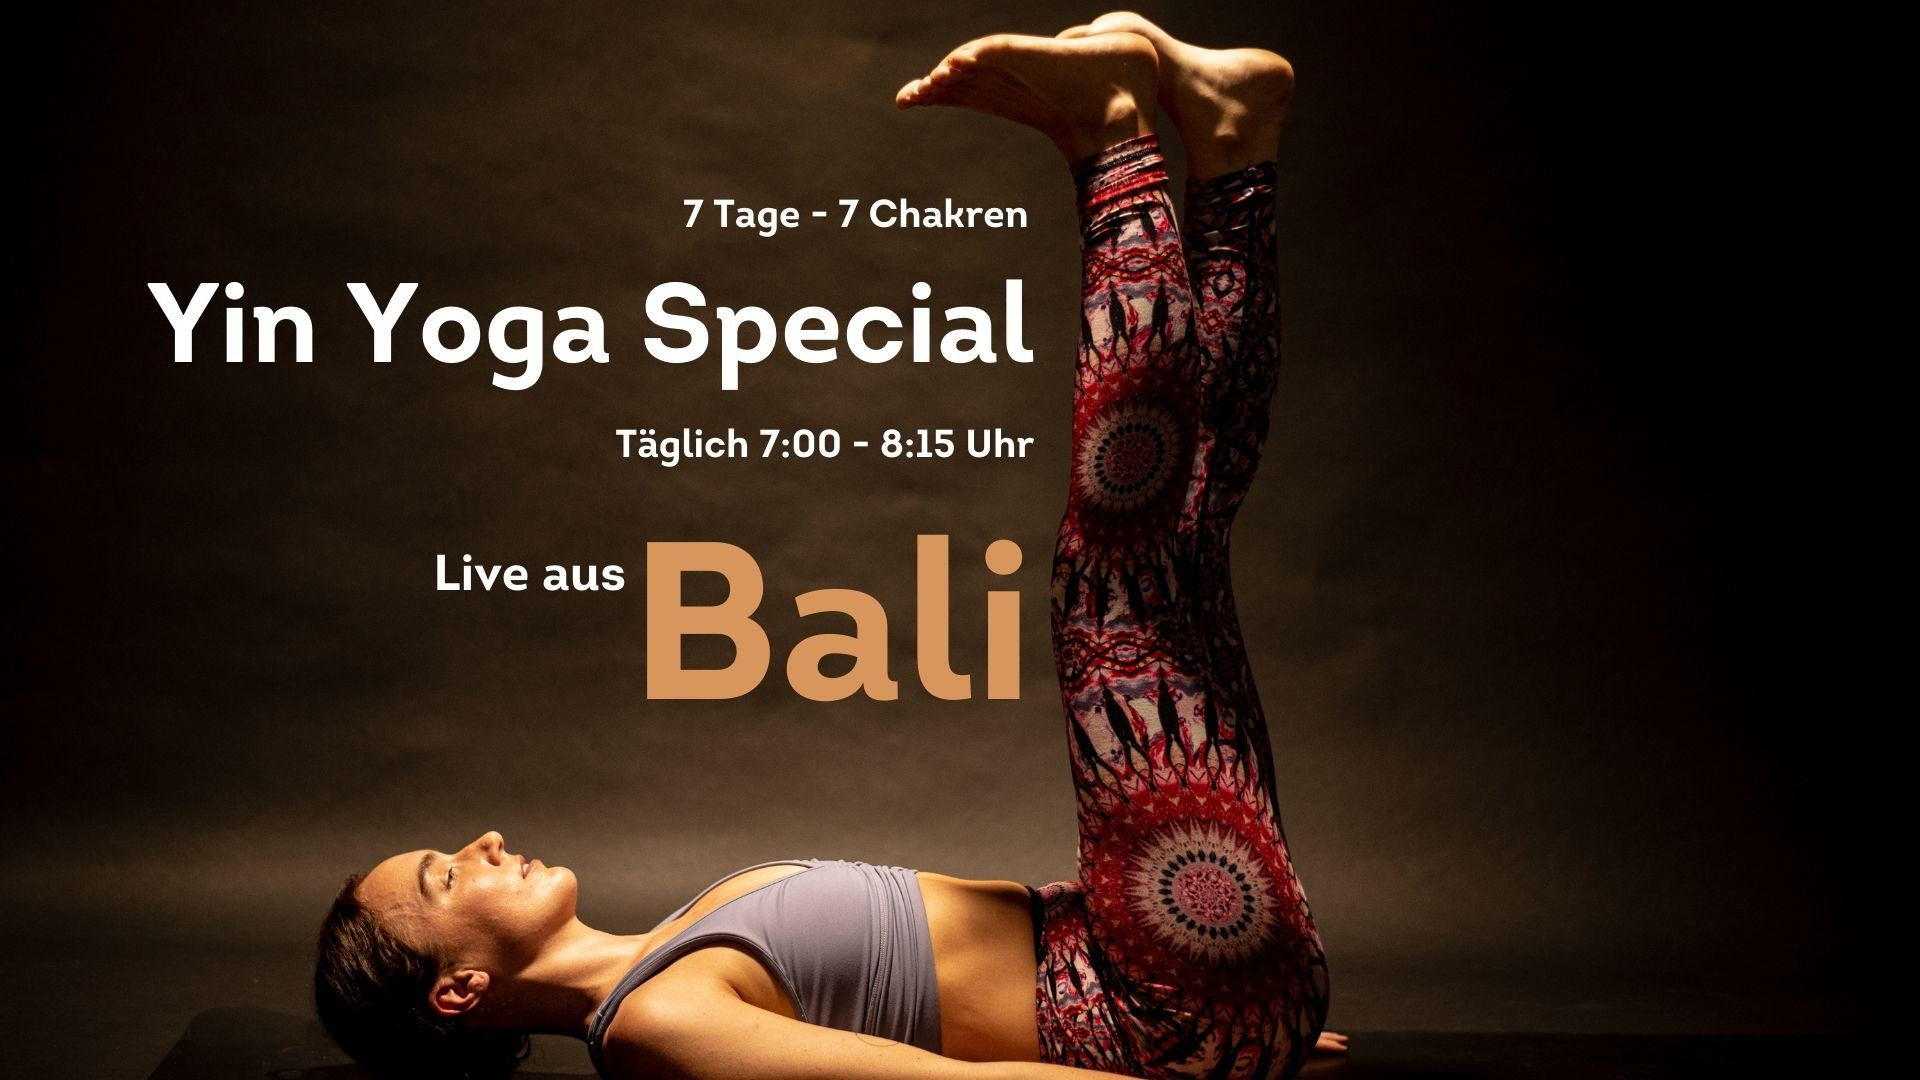 Yin Yoga Special April - Yin Yoga - Online Retreat - 7 Tage Yin Yoga